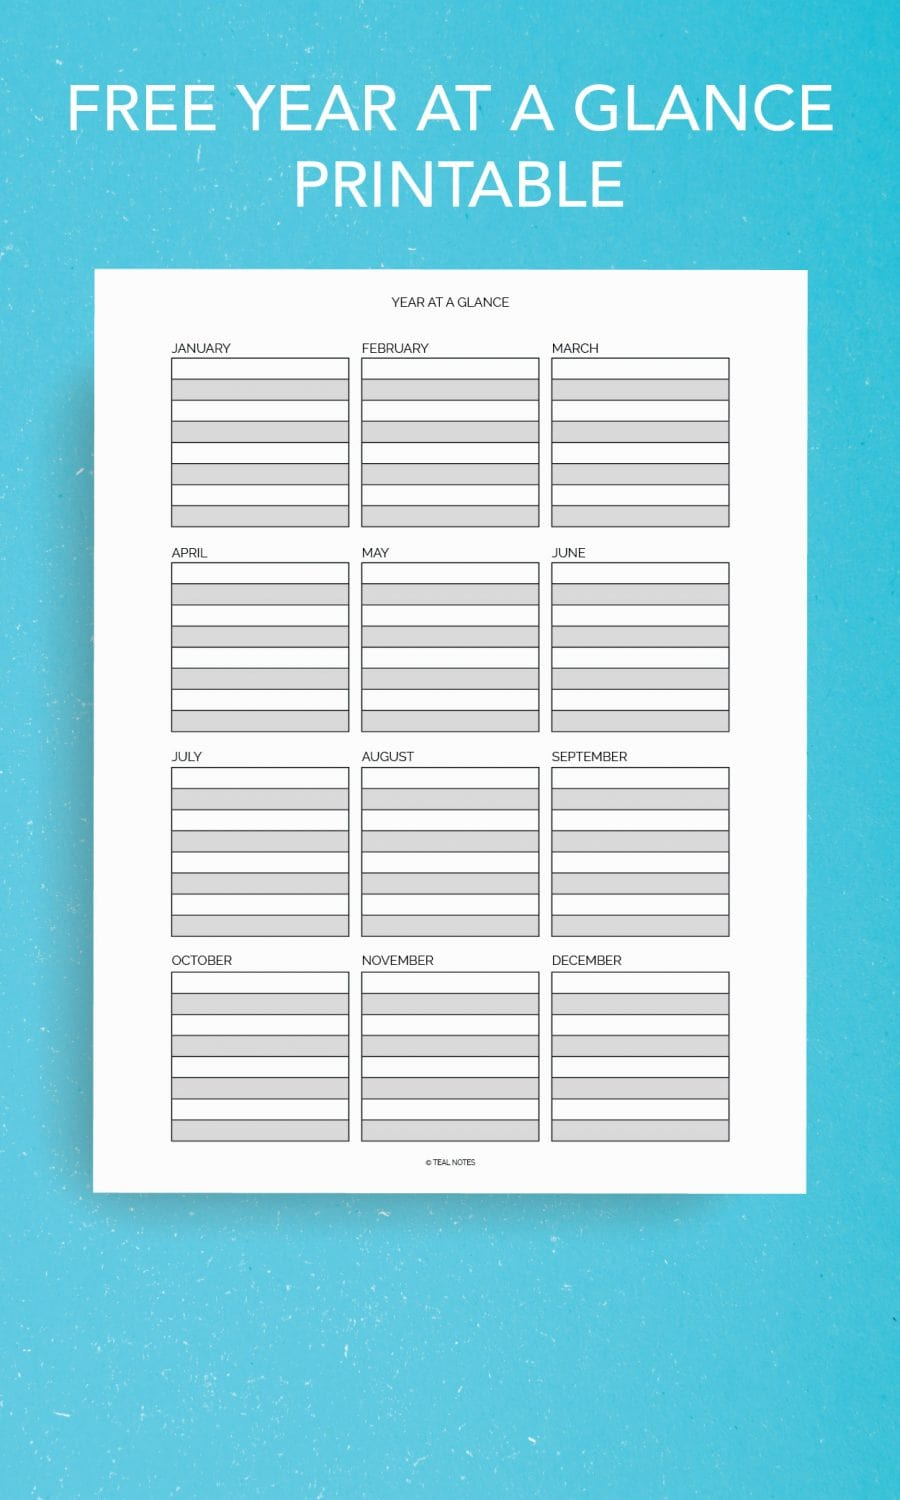 Free Year At A Glance Printable Page